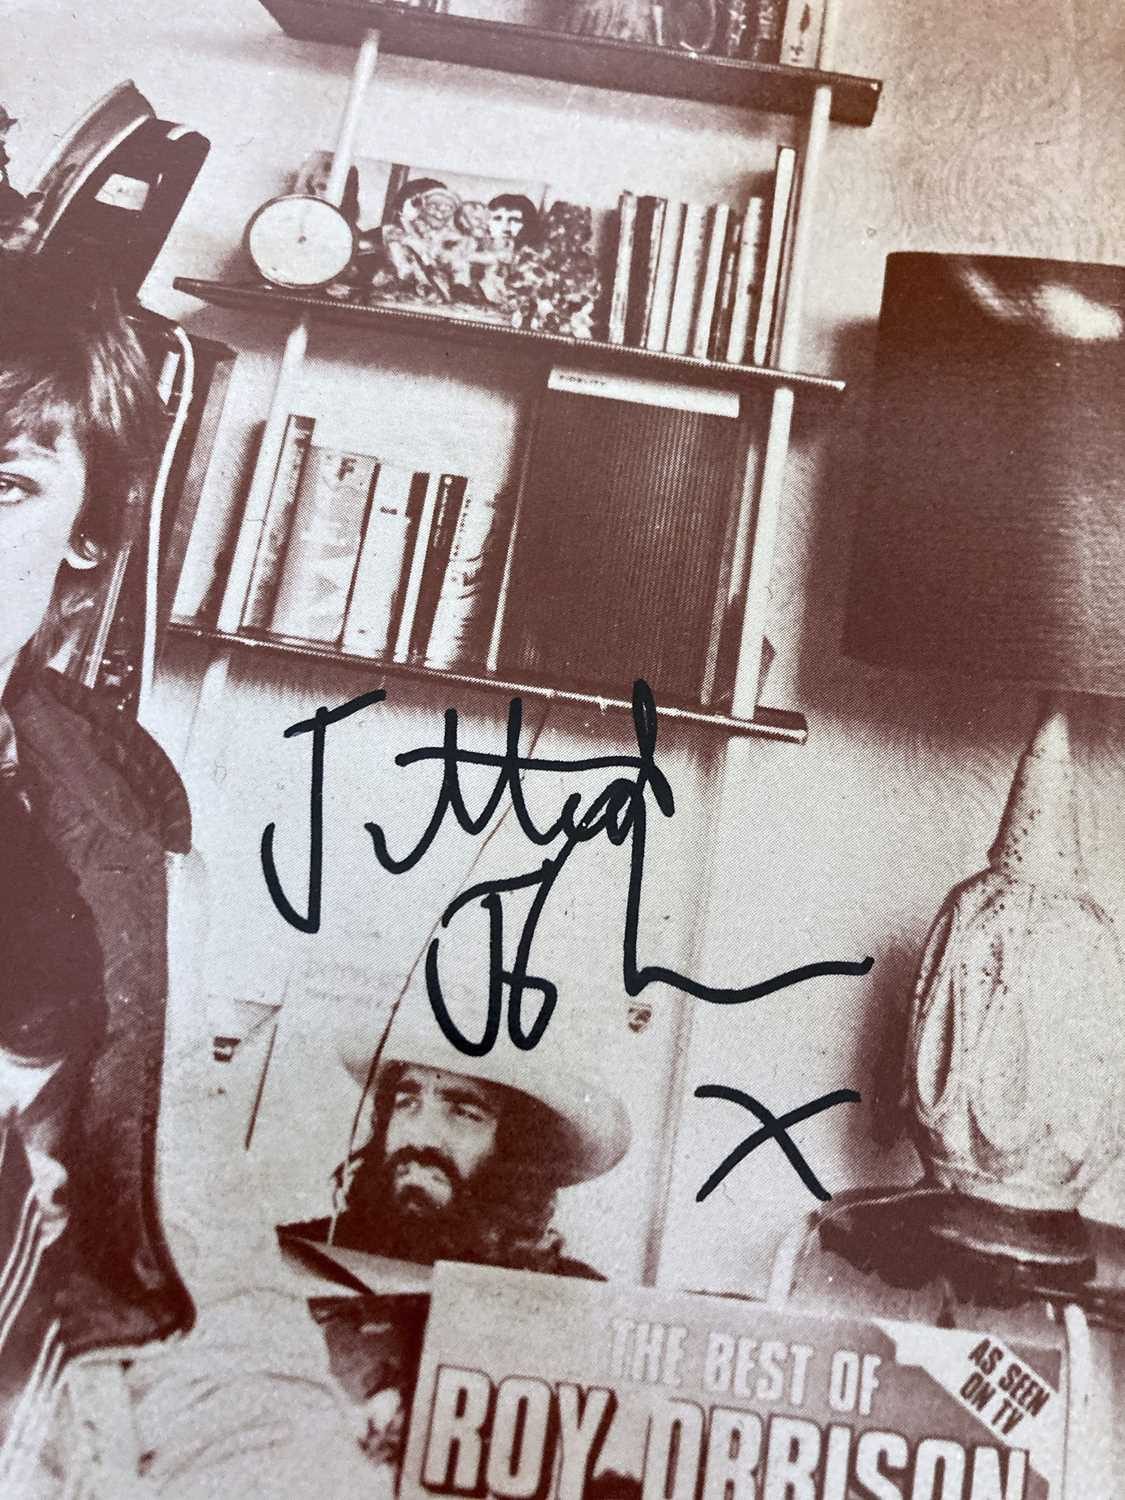 SIGNED AND RARE PUNK SINGLES - JILTED JOHN / BUZZCOCKS - Image 2 of 6